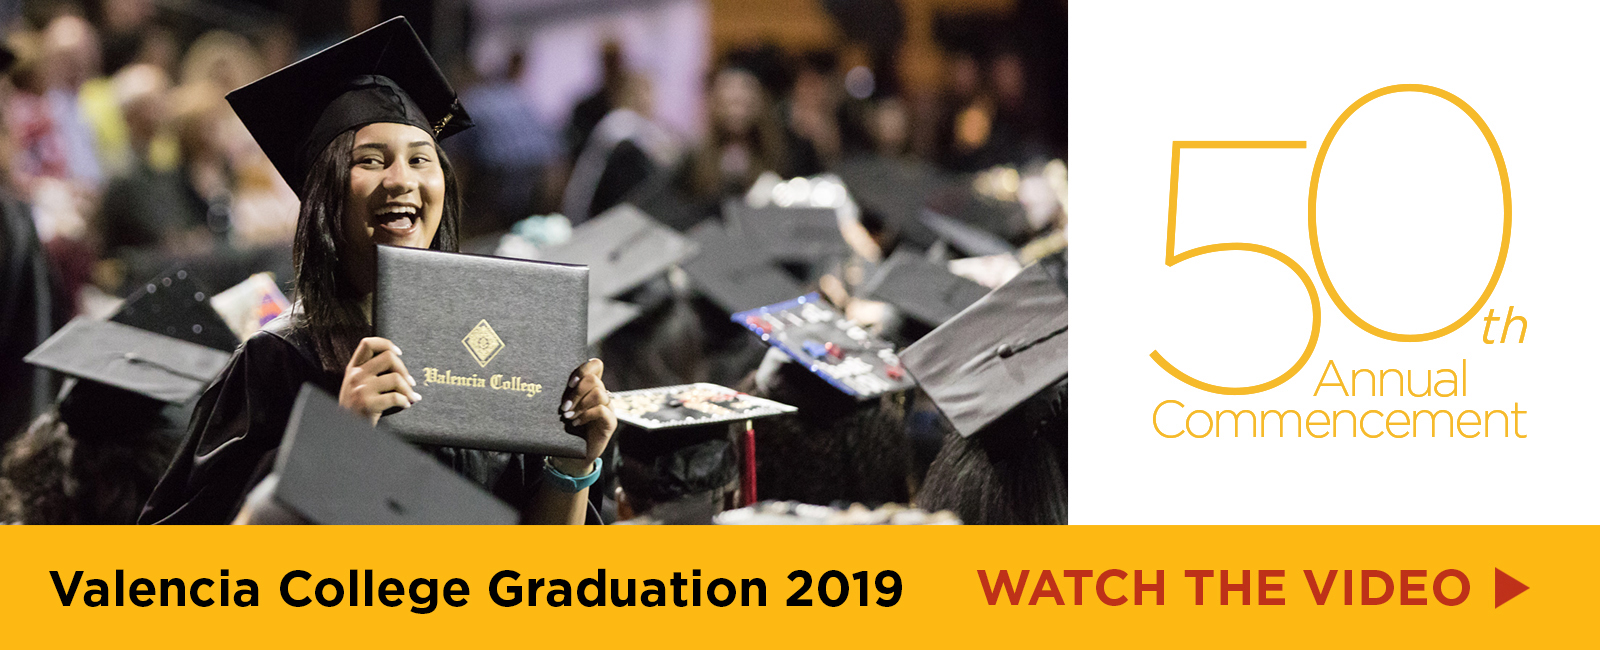 Valencia College Graduation 2019. Watch the video of the 50th Annual Commencement.